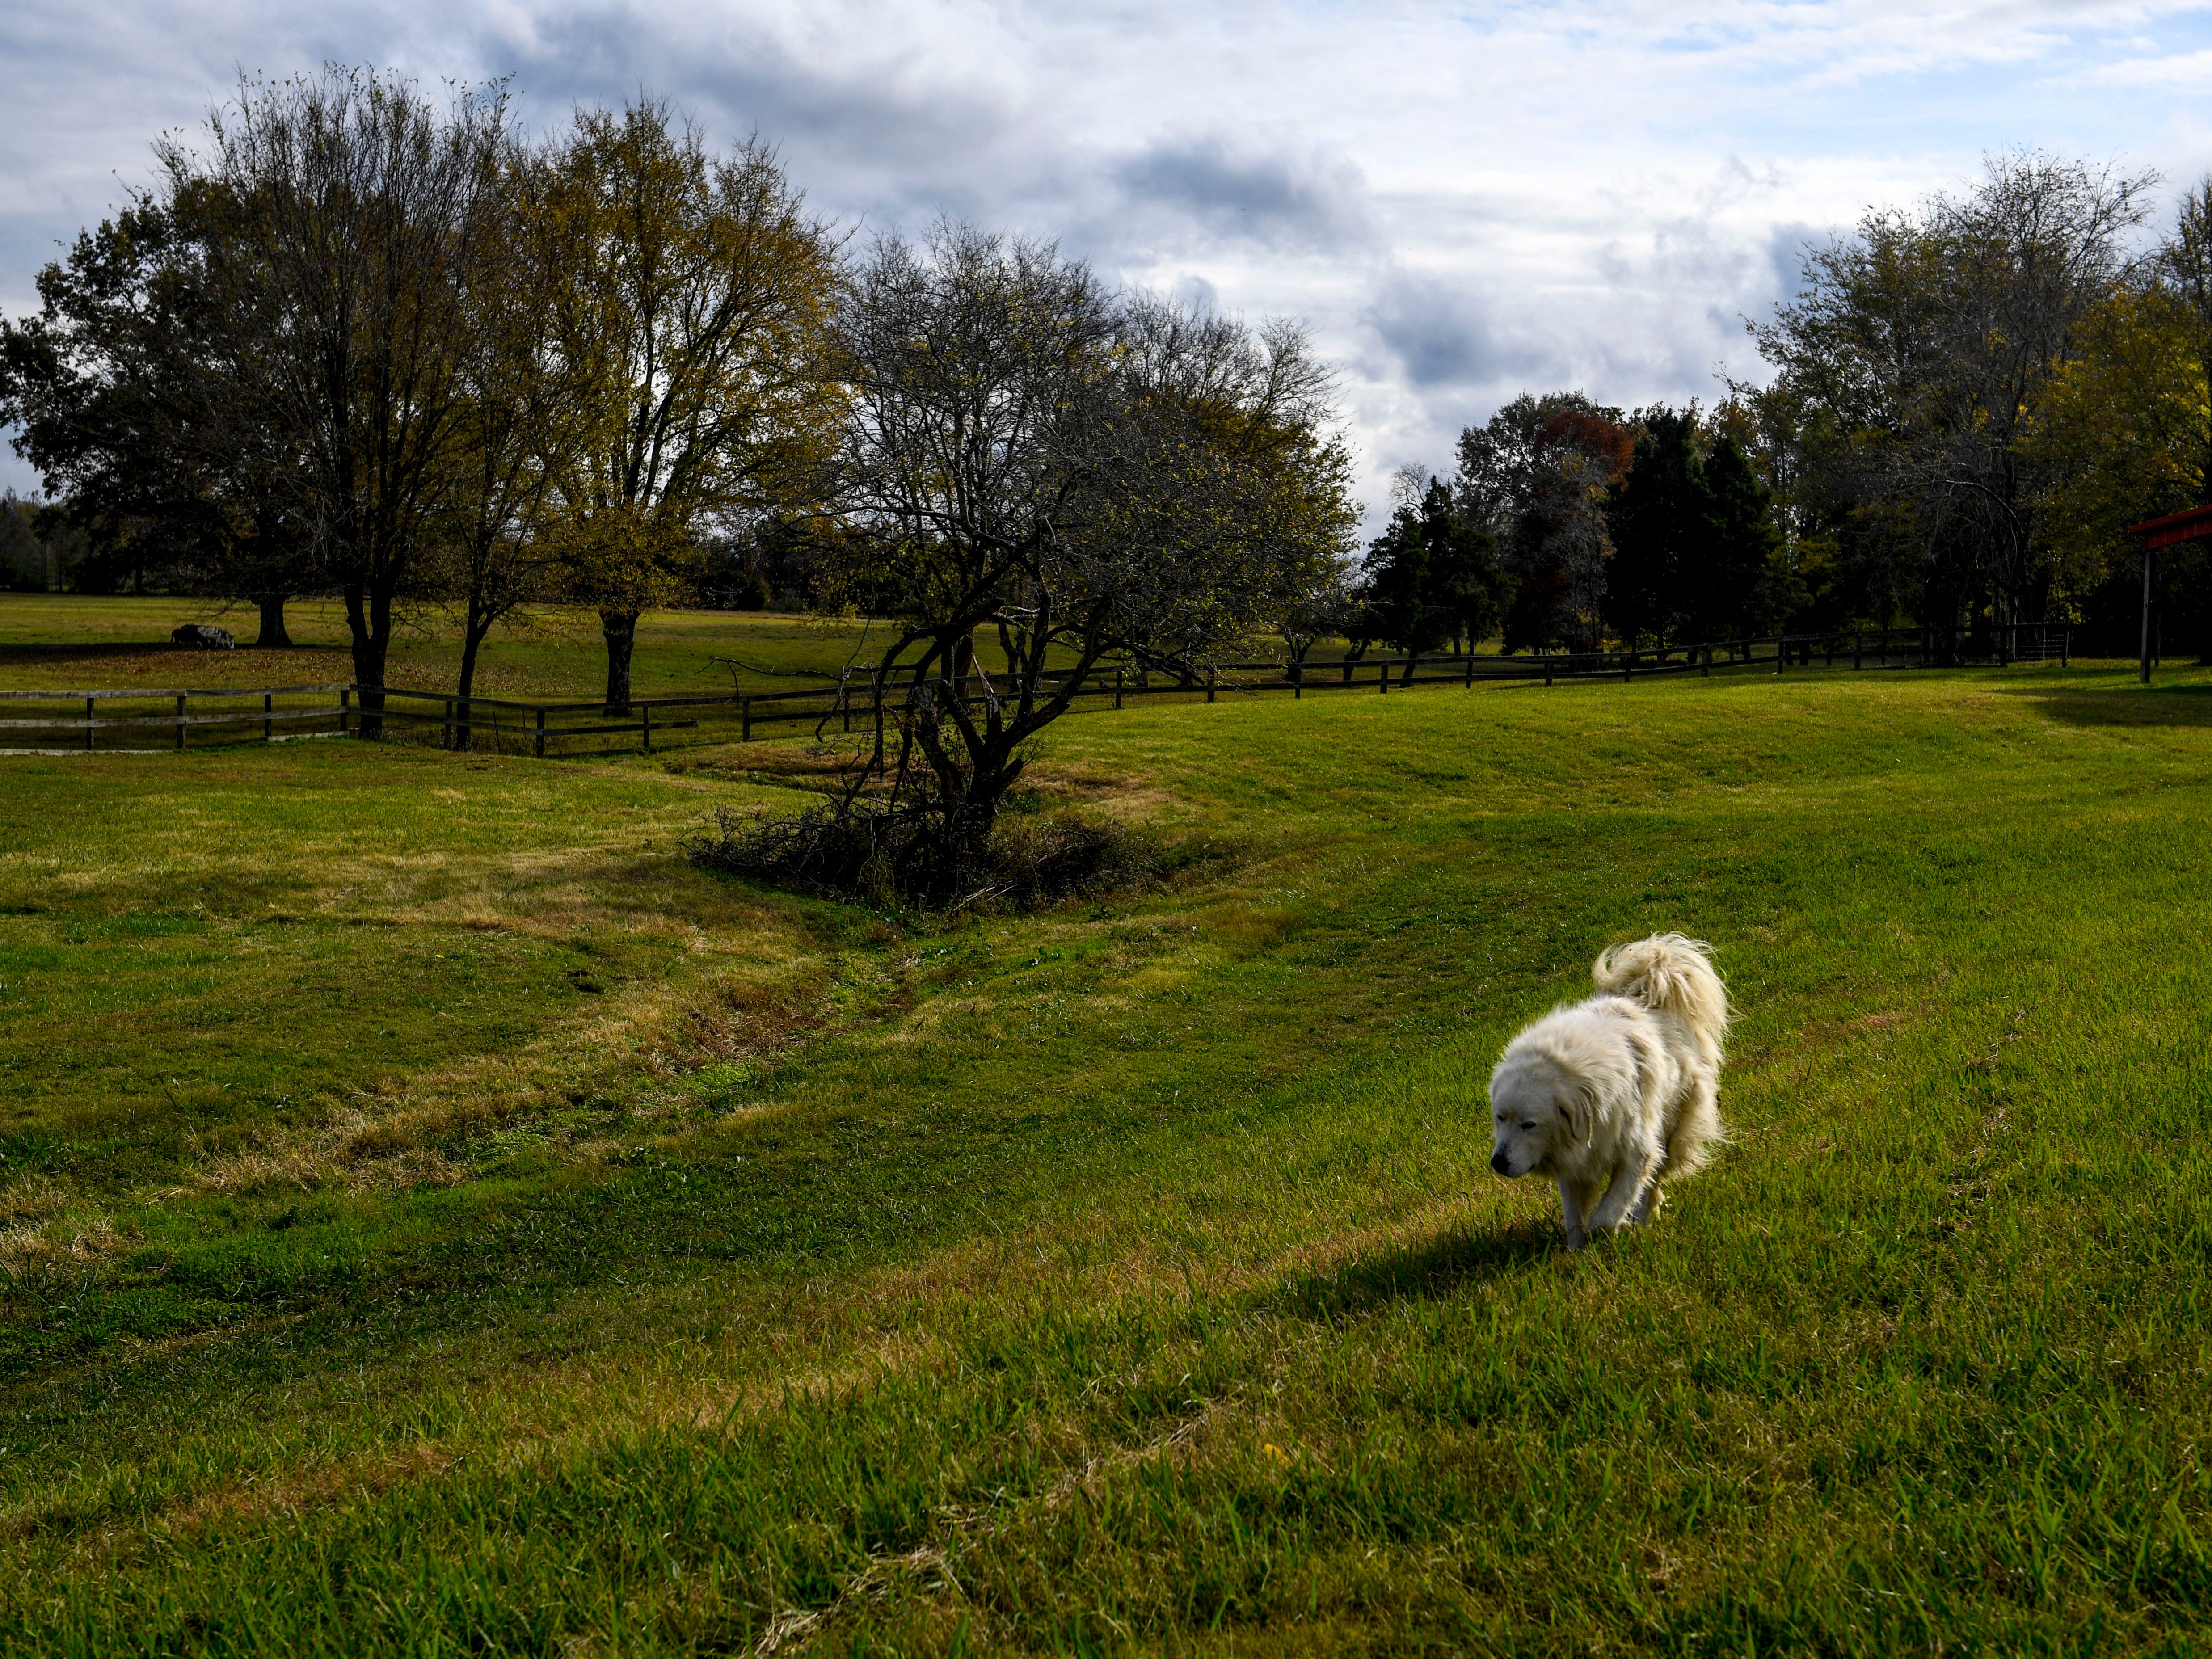 Dusty, a Great Pyrenees of the Pitoni's, walks across a field to catch up with Valeria Pitoni at Stillwaters Farm in Henderson, Tenn., on Monday, Nov. 5, 2018.